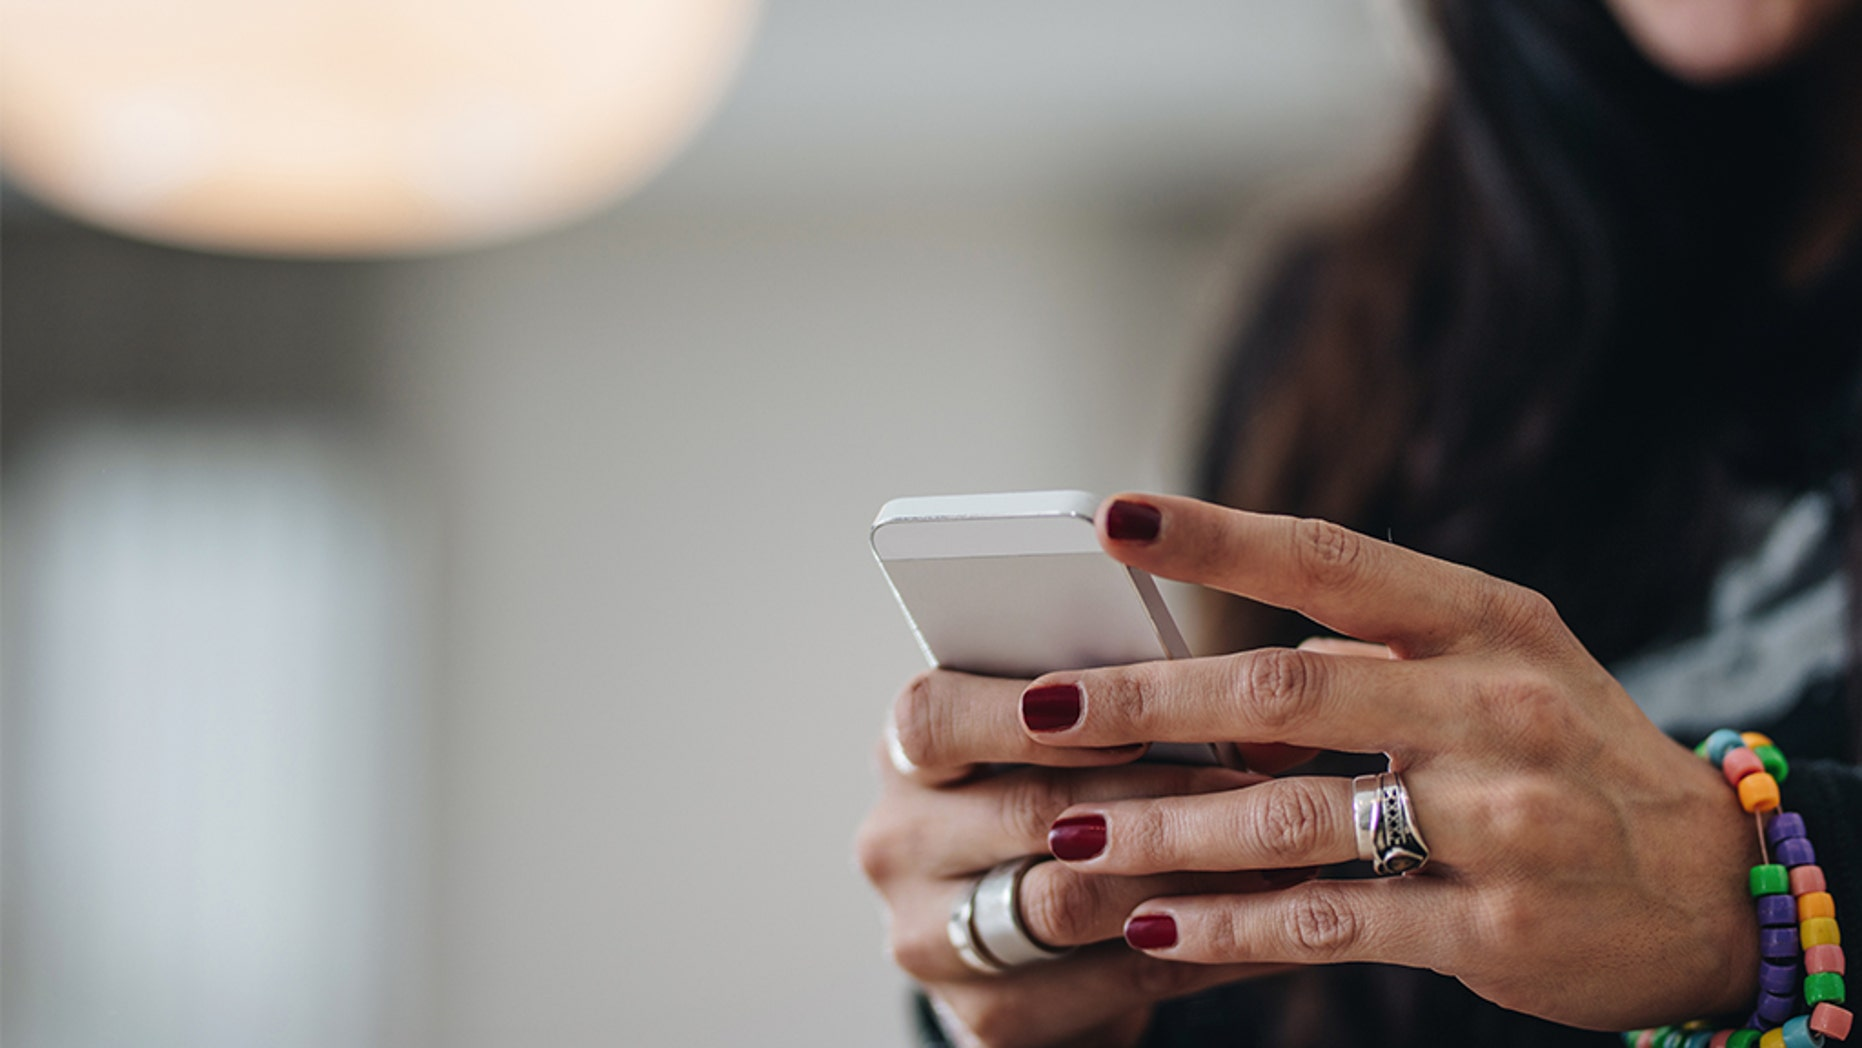 Women in Saudi Arabia will now be informed via text message if they're being divorced, the government announced Sunday.